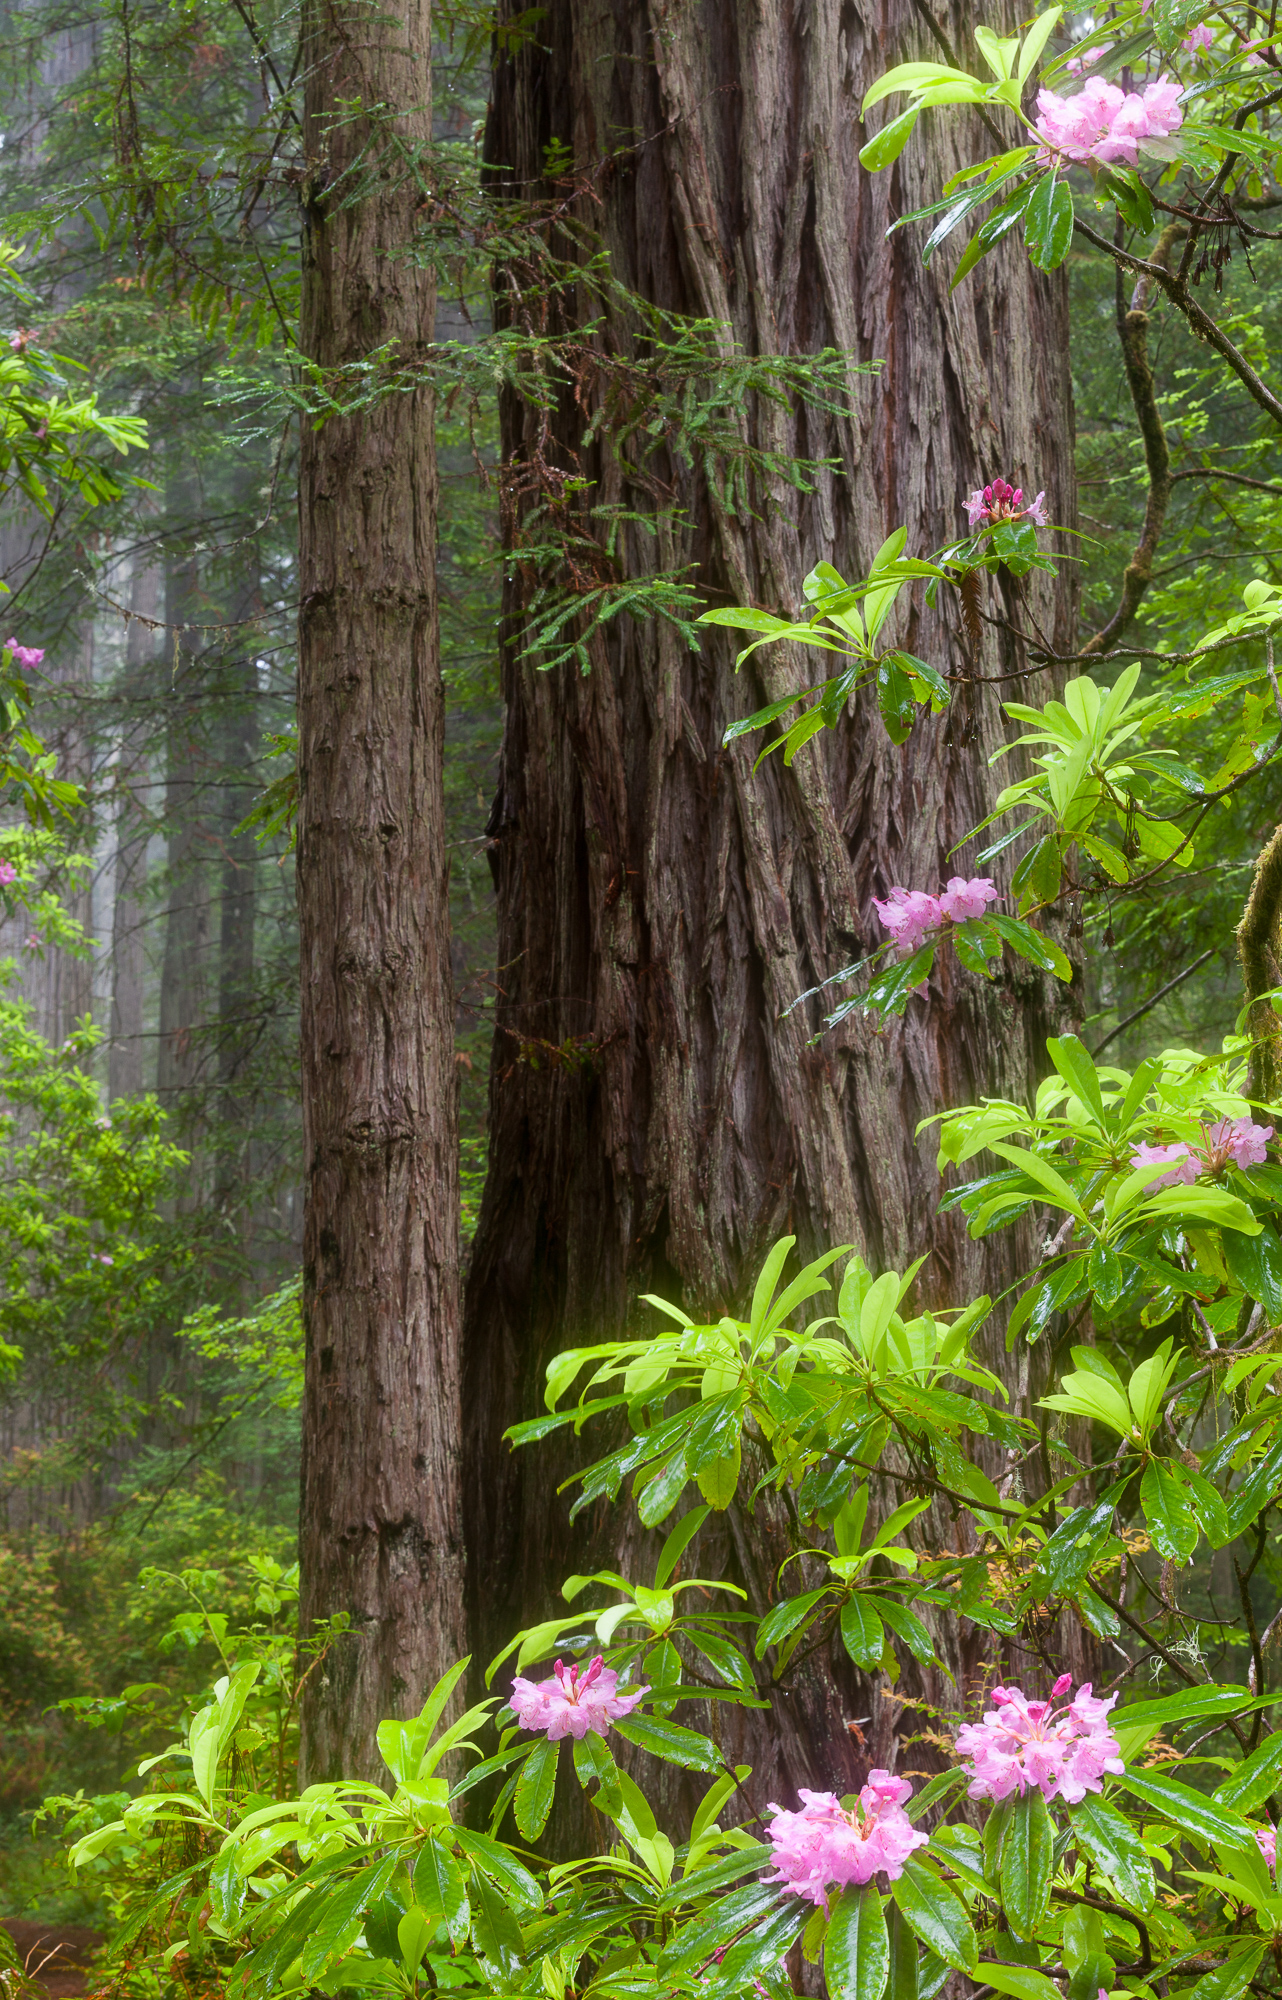 Rhododendrons grow amongst the redwoods along the California coast.  Fog regularly permeates the forest, giving these giants the perfect conditions in which to grow.